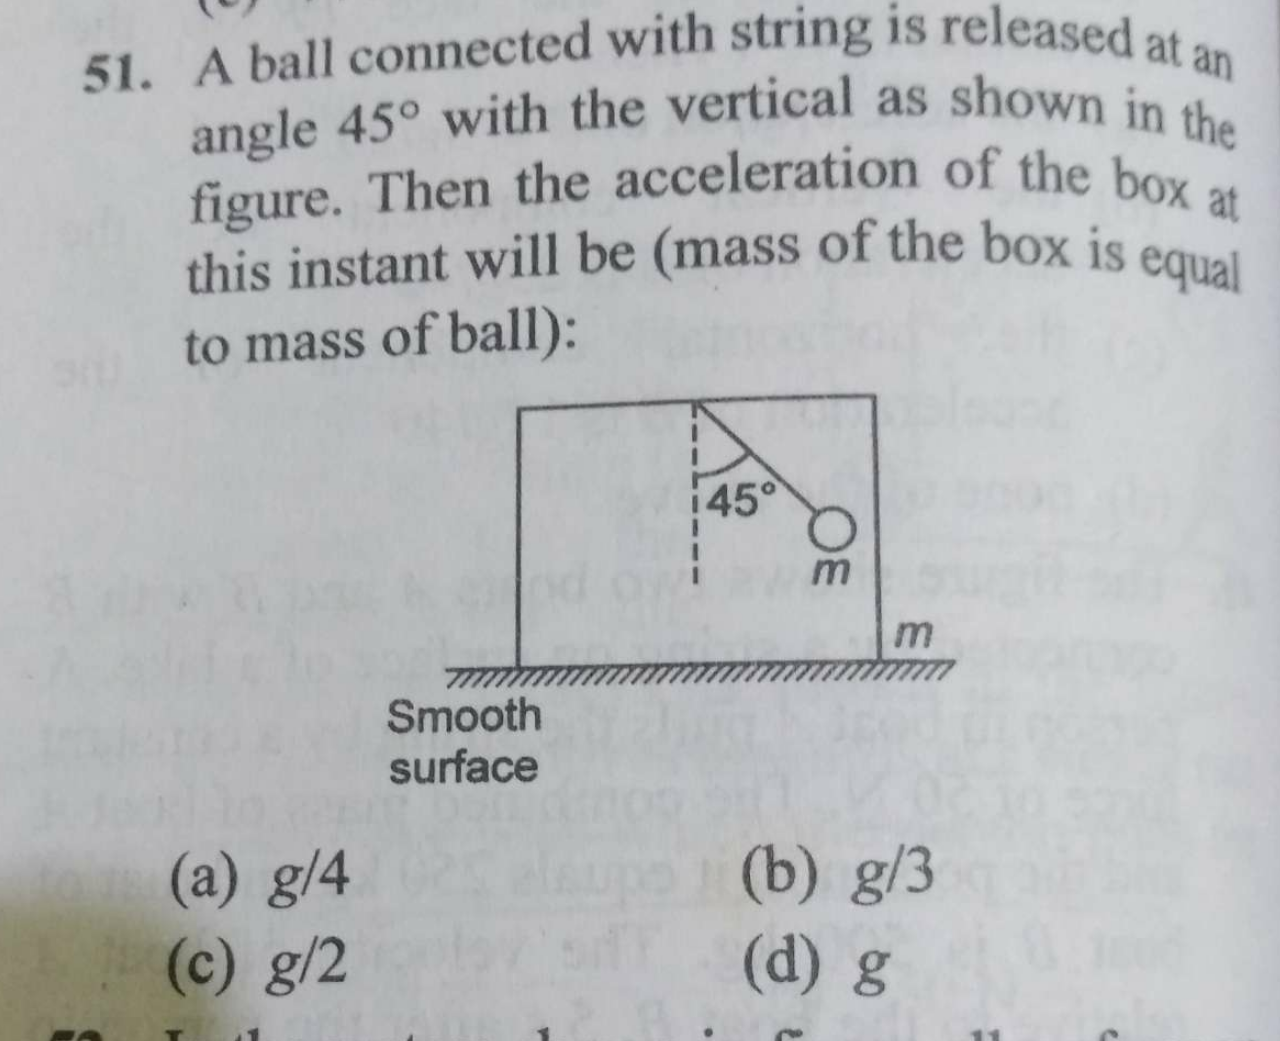 A ball connected with string is released at an angle 45 with the vertical as shown in the figure. Then the acceleration of the box at this instant will be (mass of t